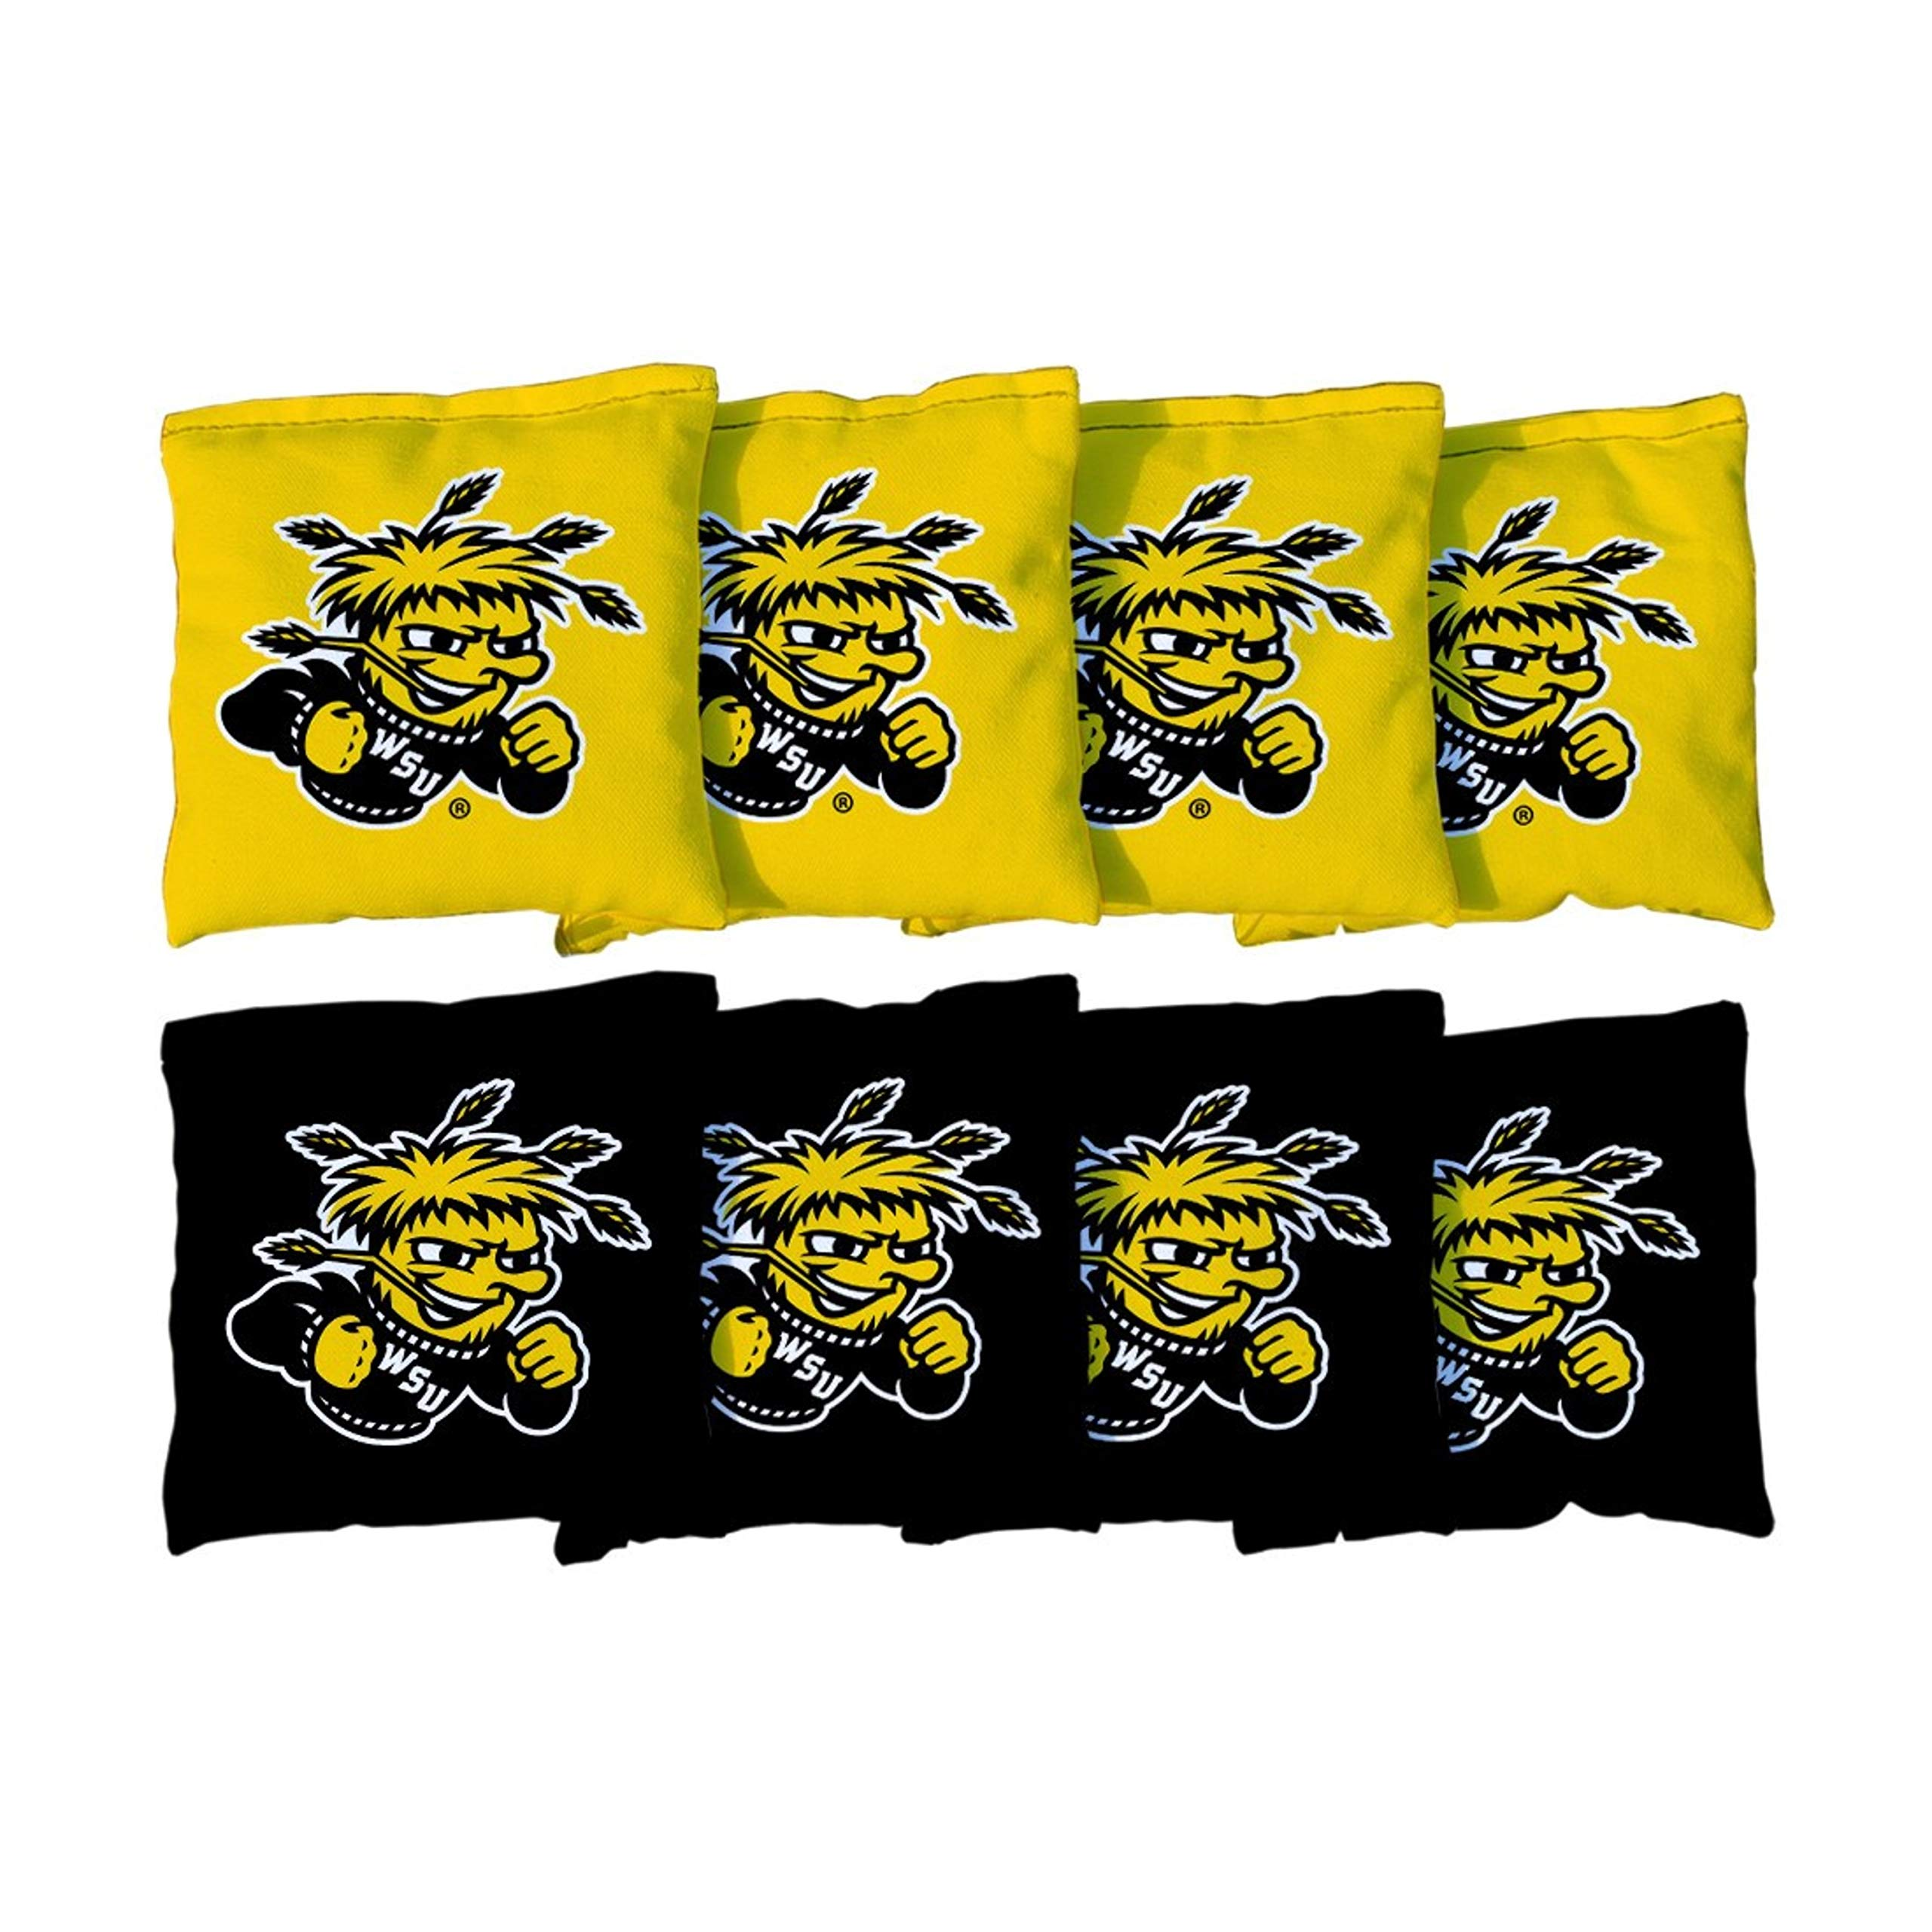 Victory Tailgate NCAA Regulation Cornhole Game Bag Set (8 Bags Included, Corn-Filled) - Wichita State University Shockers